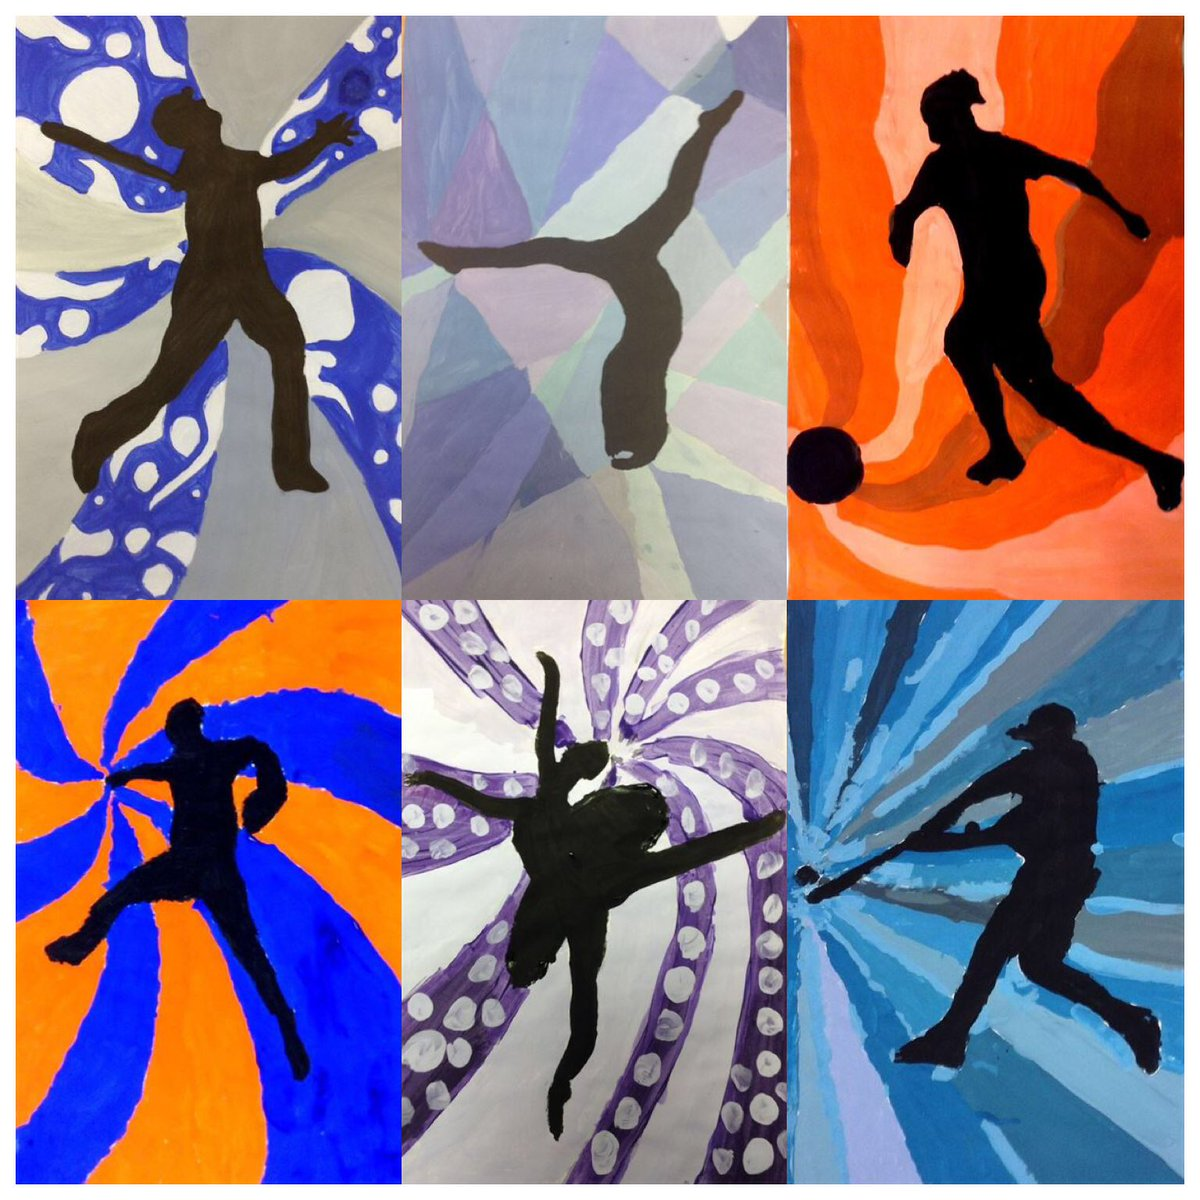 Silhouettes in Motion @MsMoncatch #mannschool #colortheory #design #paint #art #baseball #soccer #dance #gymnastics #bicycling #ballet<br>http://pic.twitter.com/Gf2ywtHPyn